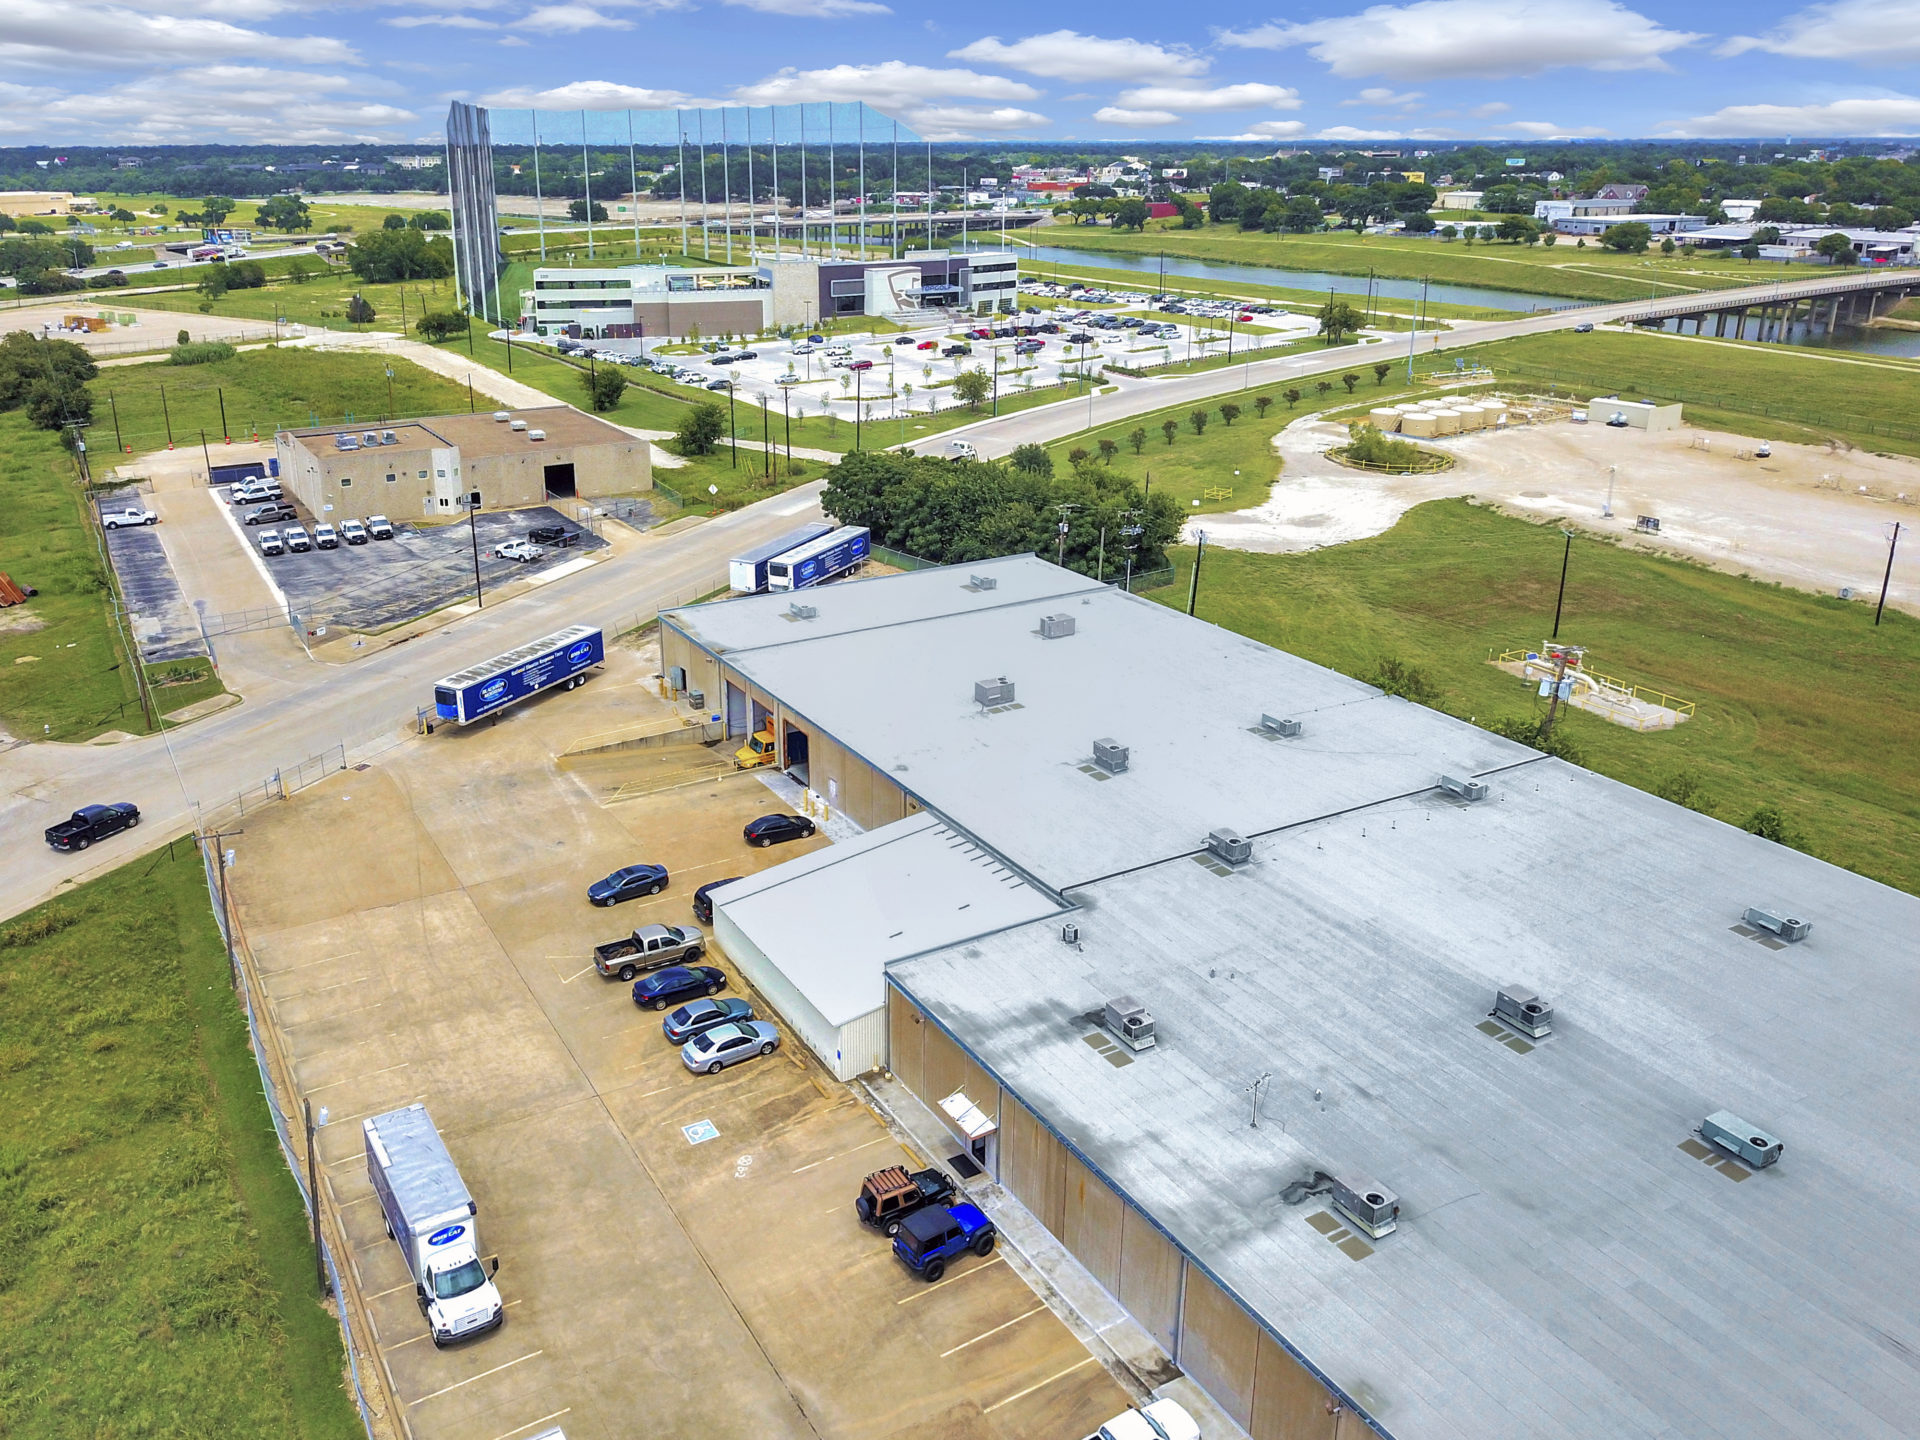 Aerial view of a tan building with a grey roof and a lot of trailers and cars with views of Top Golf in the background